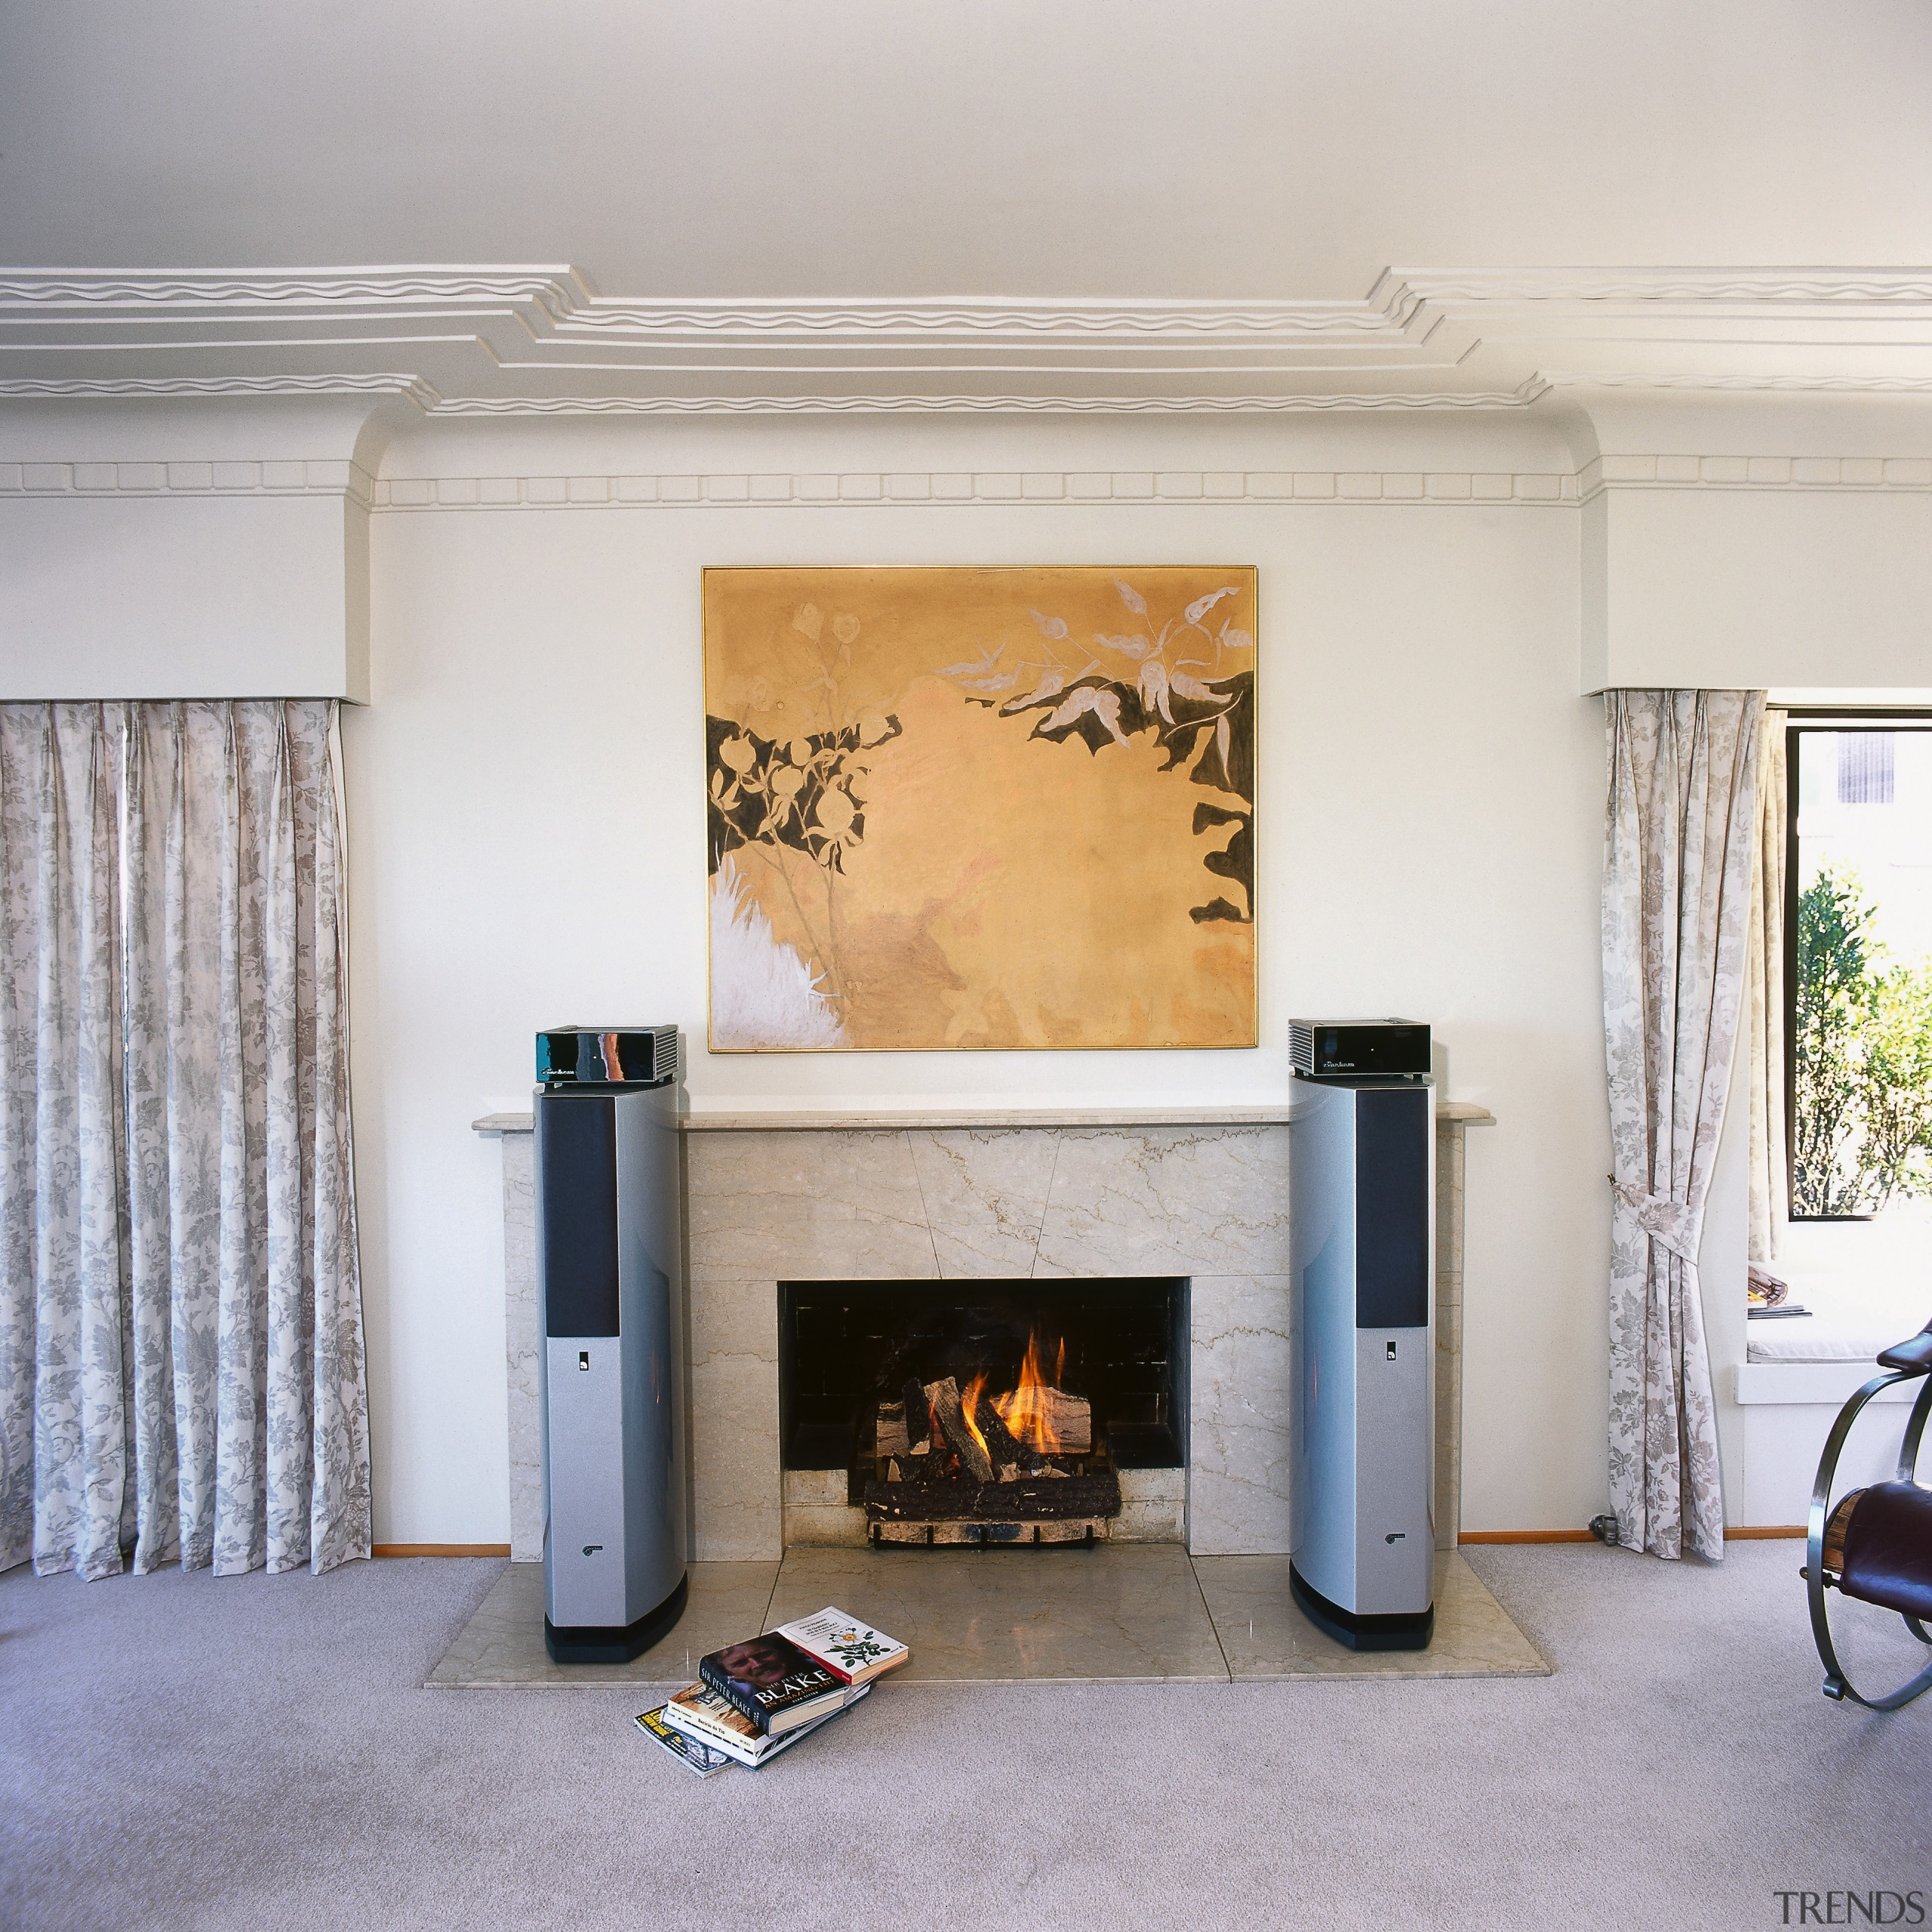 view of the bravo fx-10 speakers that are fireplace, floor, hearth, home, interior design, living room, wood burning stove, gray